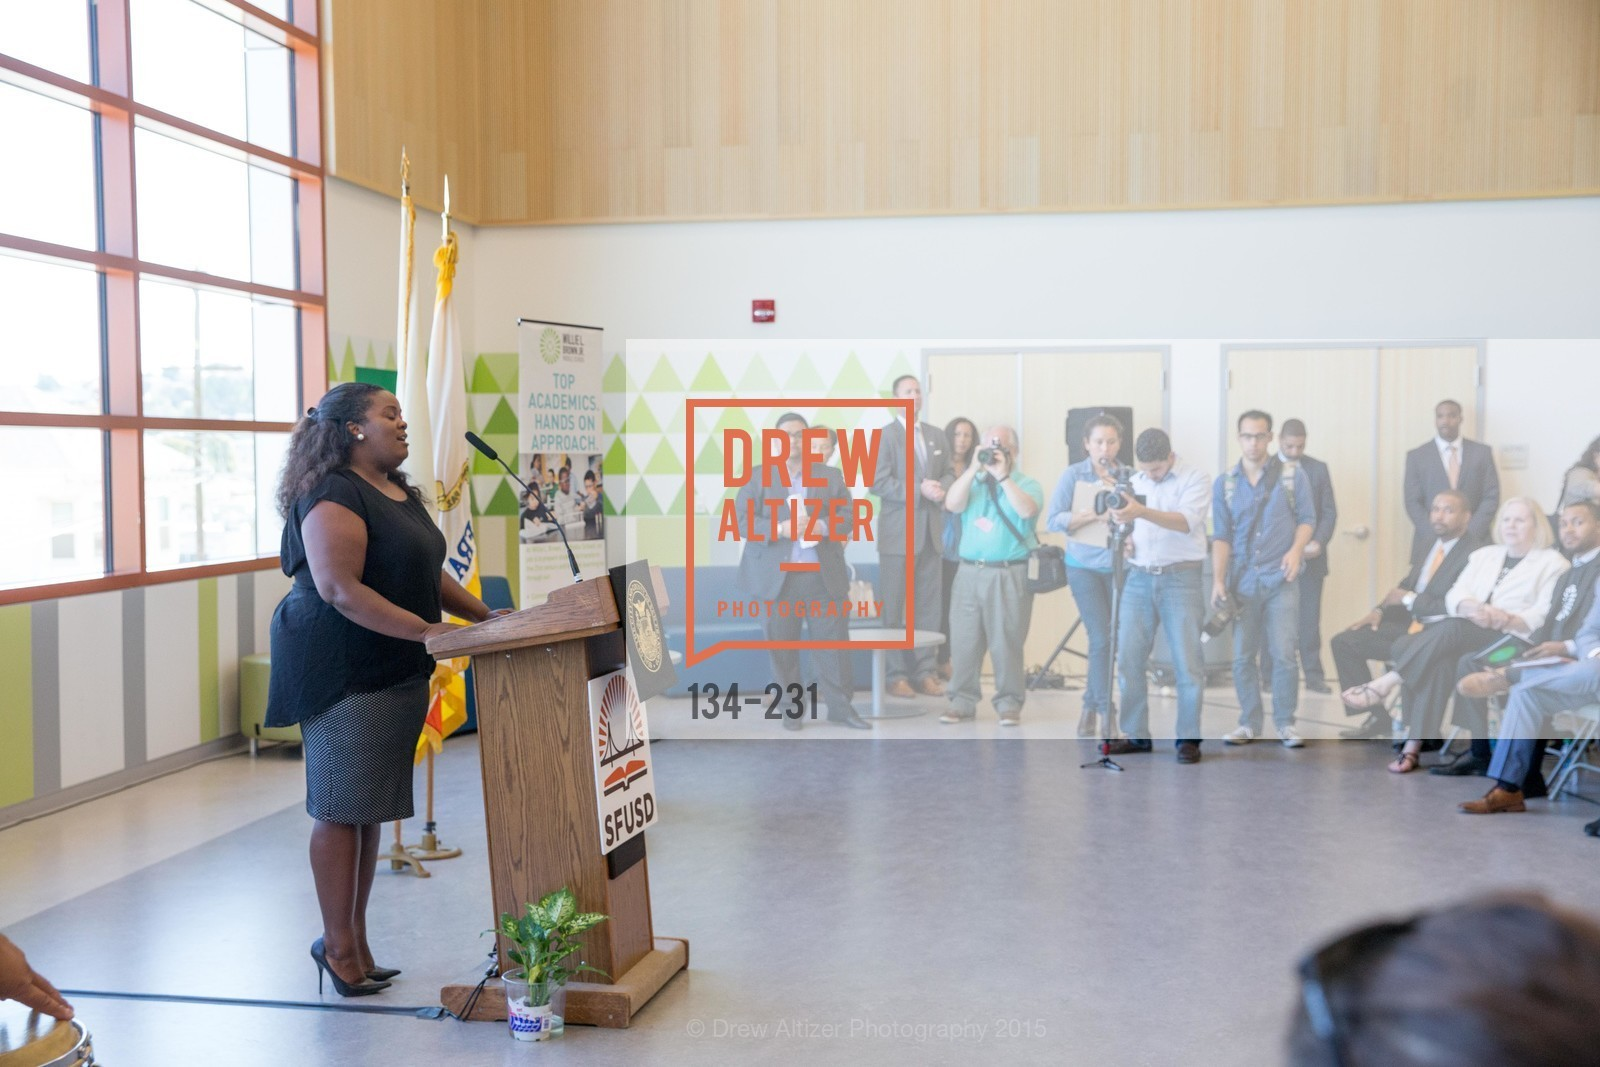 Extras, Willie L. Brown Middle School Ribbon Cutting Ceremony, August 13th, 2015, Photo,Drew Altizer, Drew Altizer Photography, full-service event agency, private events, San Francisco photographer, photographer California